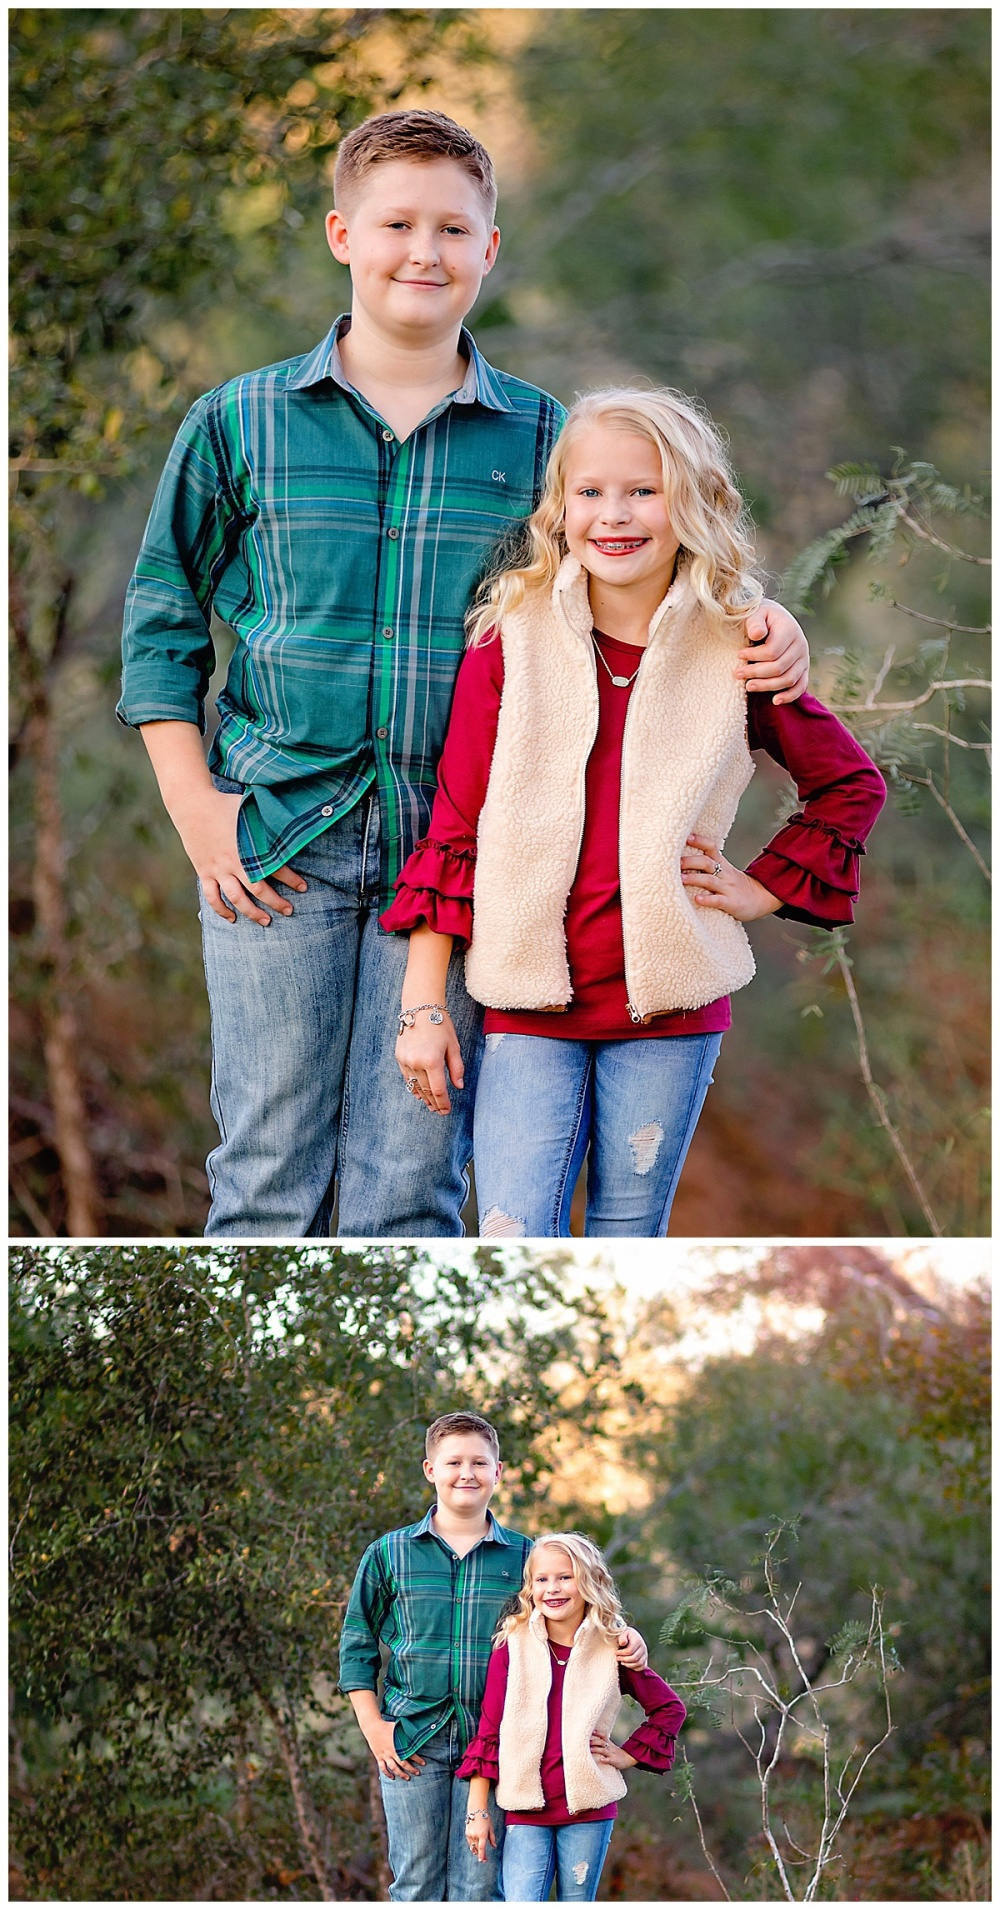 Family-Photographer-LaVernia-Texas-Fall-Sunset-Carly-Barton-Photography_0002.jpg